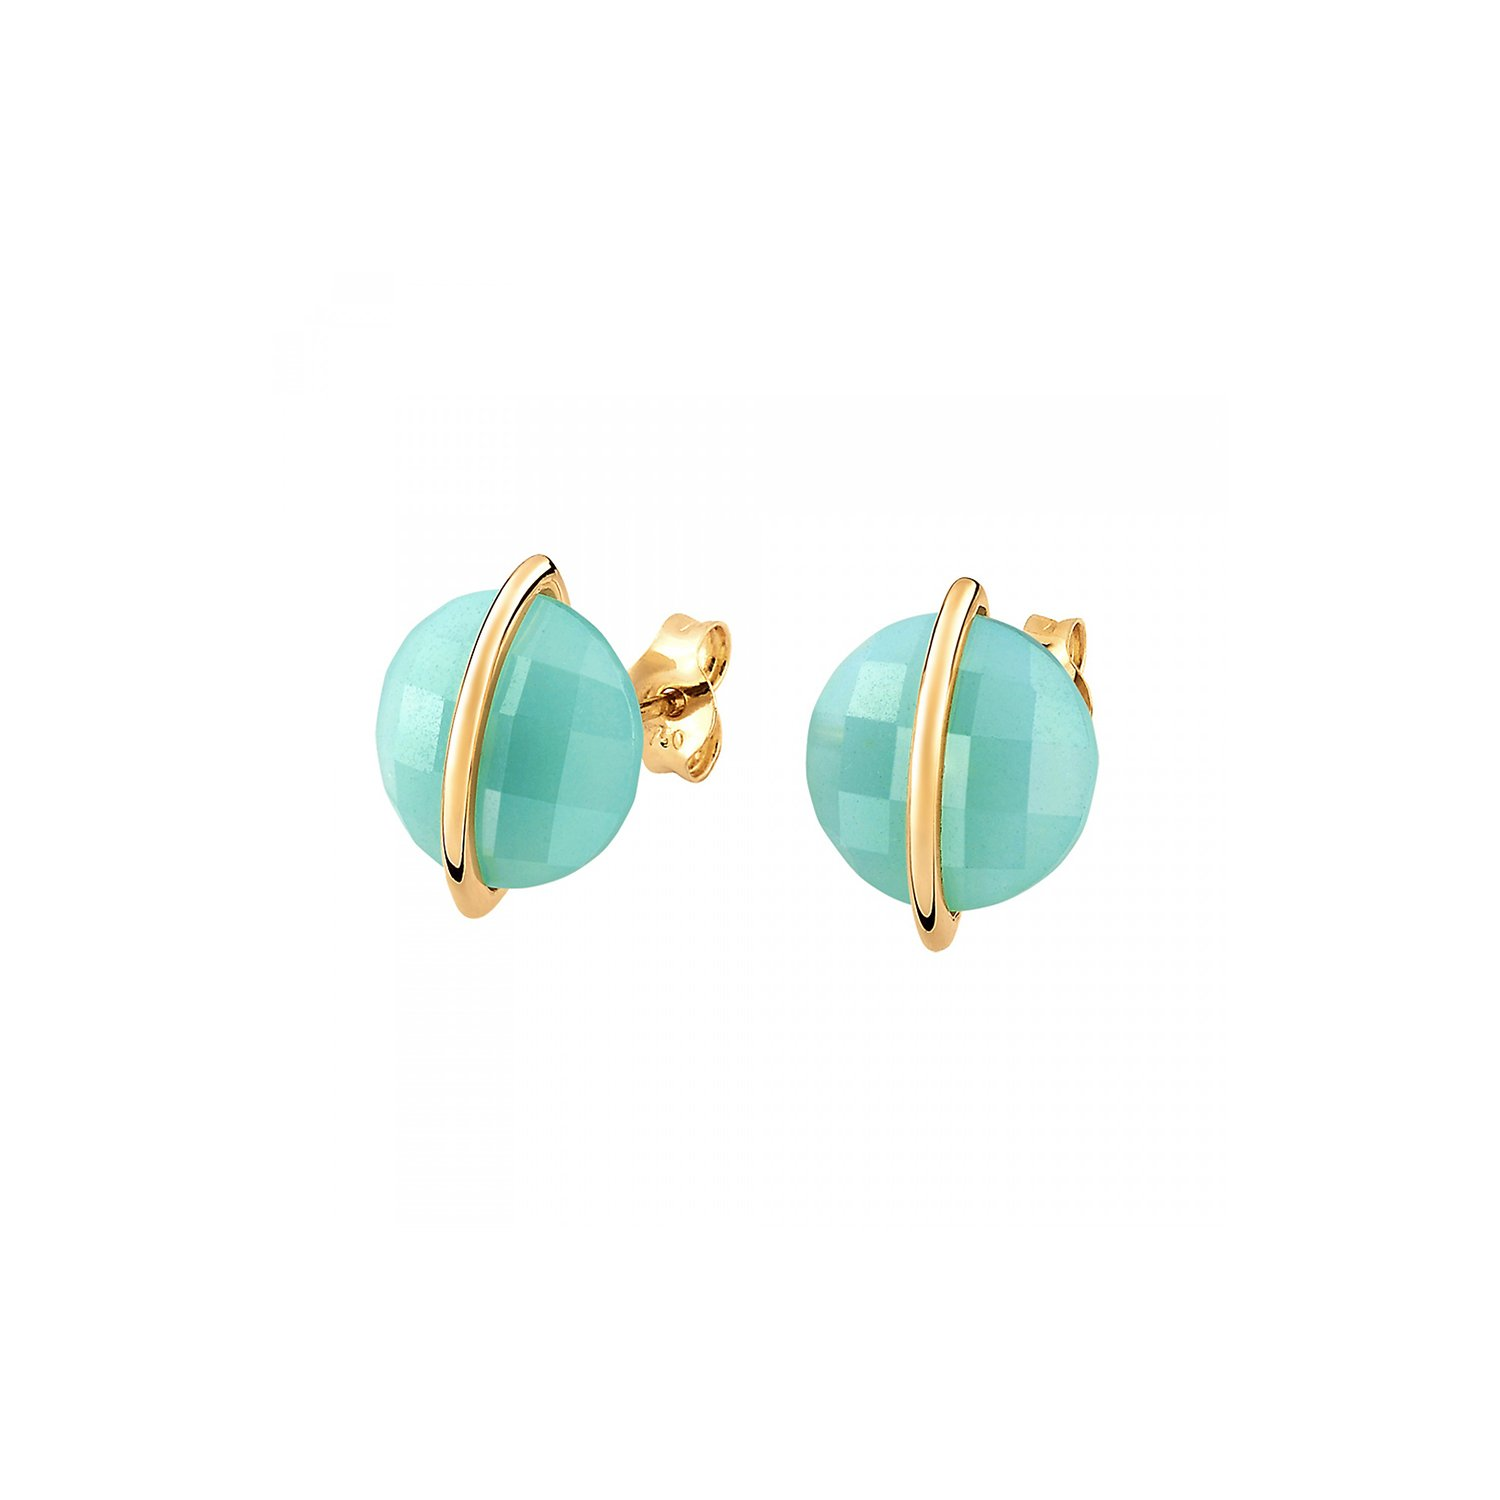 Boucles d'oreilles Morganne Bello Honoré  en or jaune et amazonite